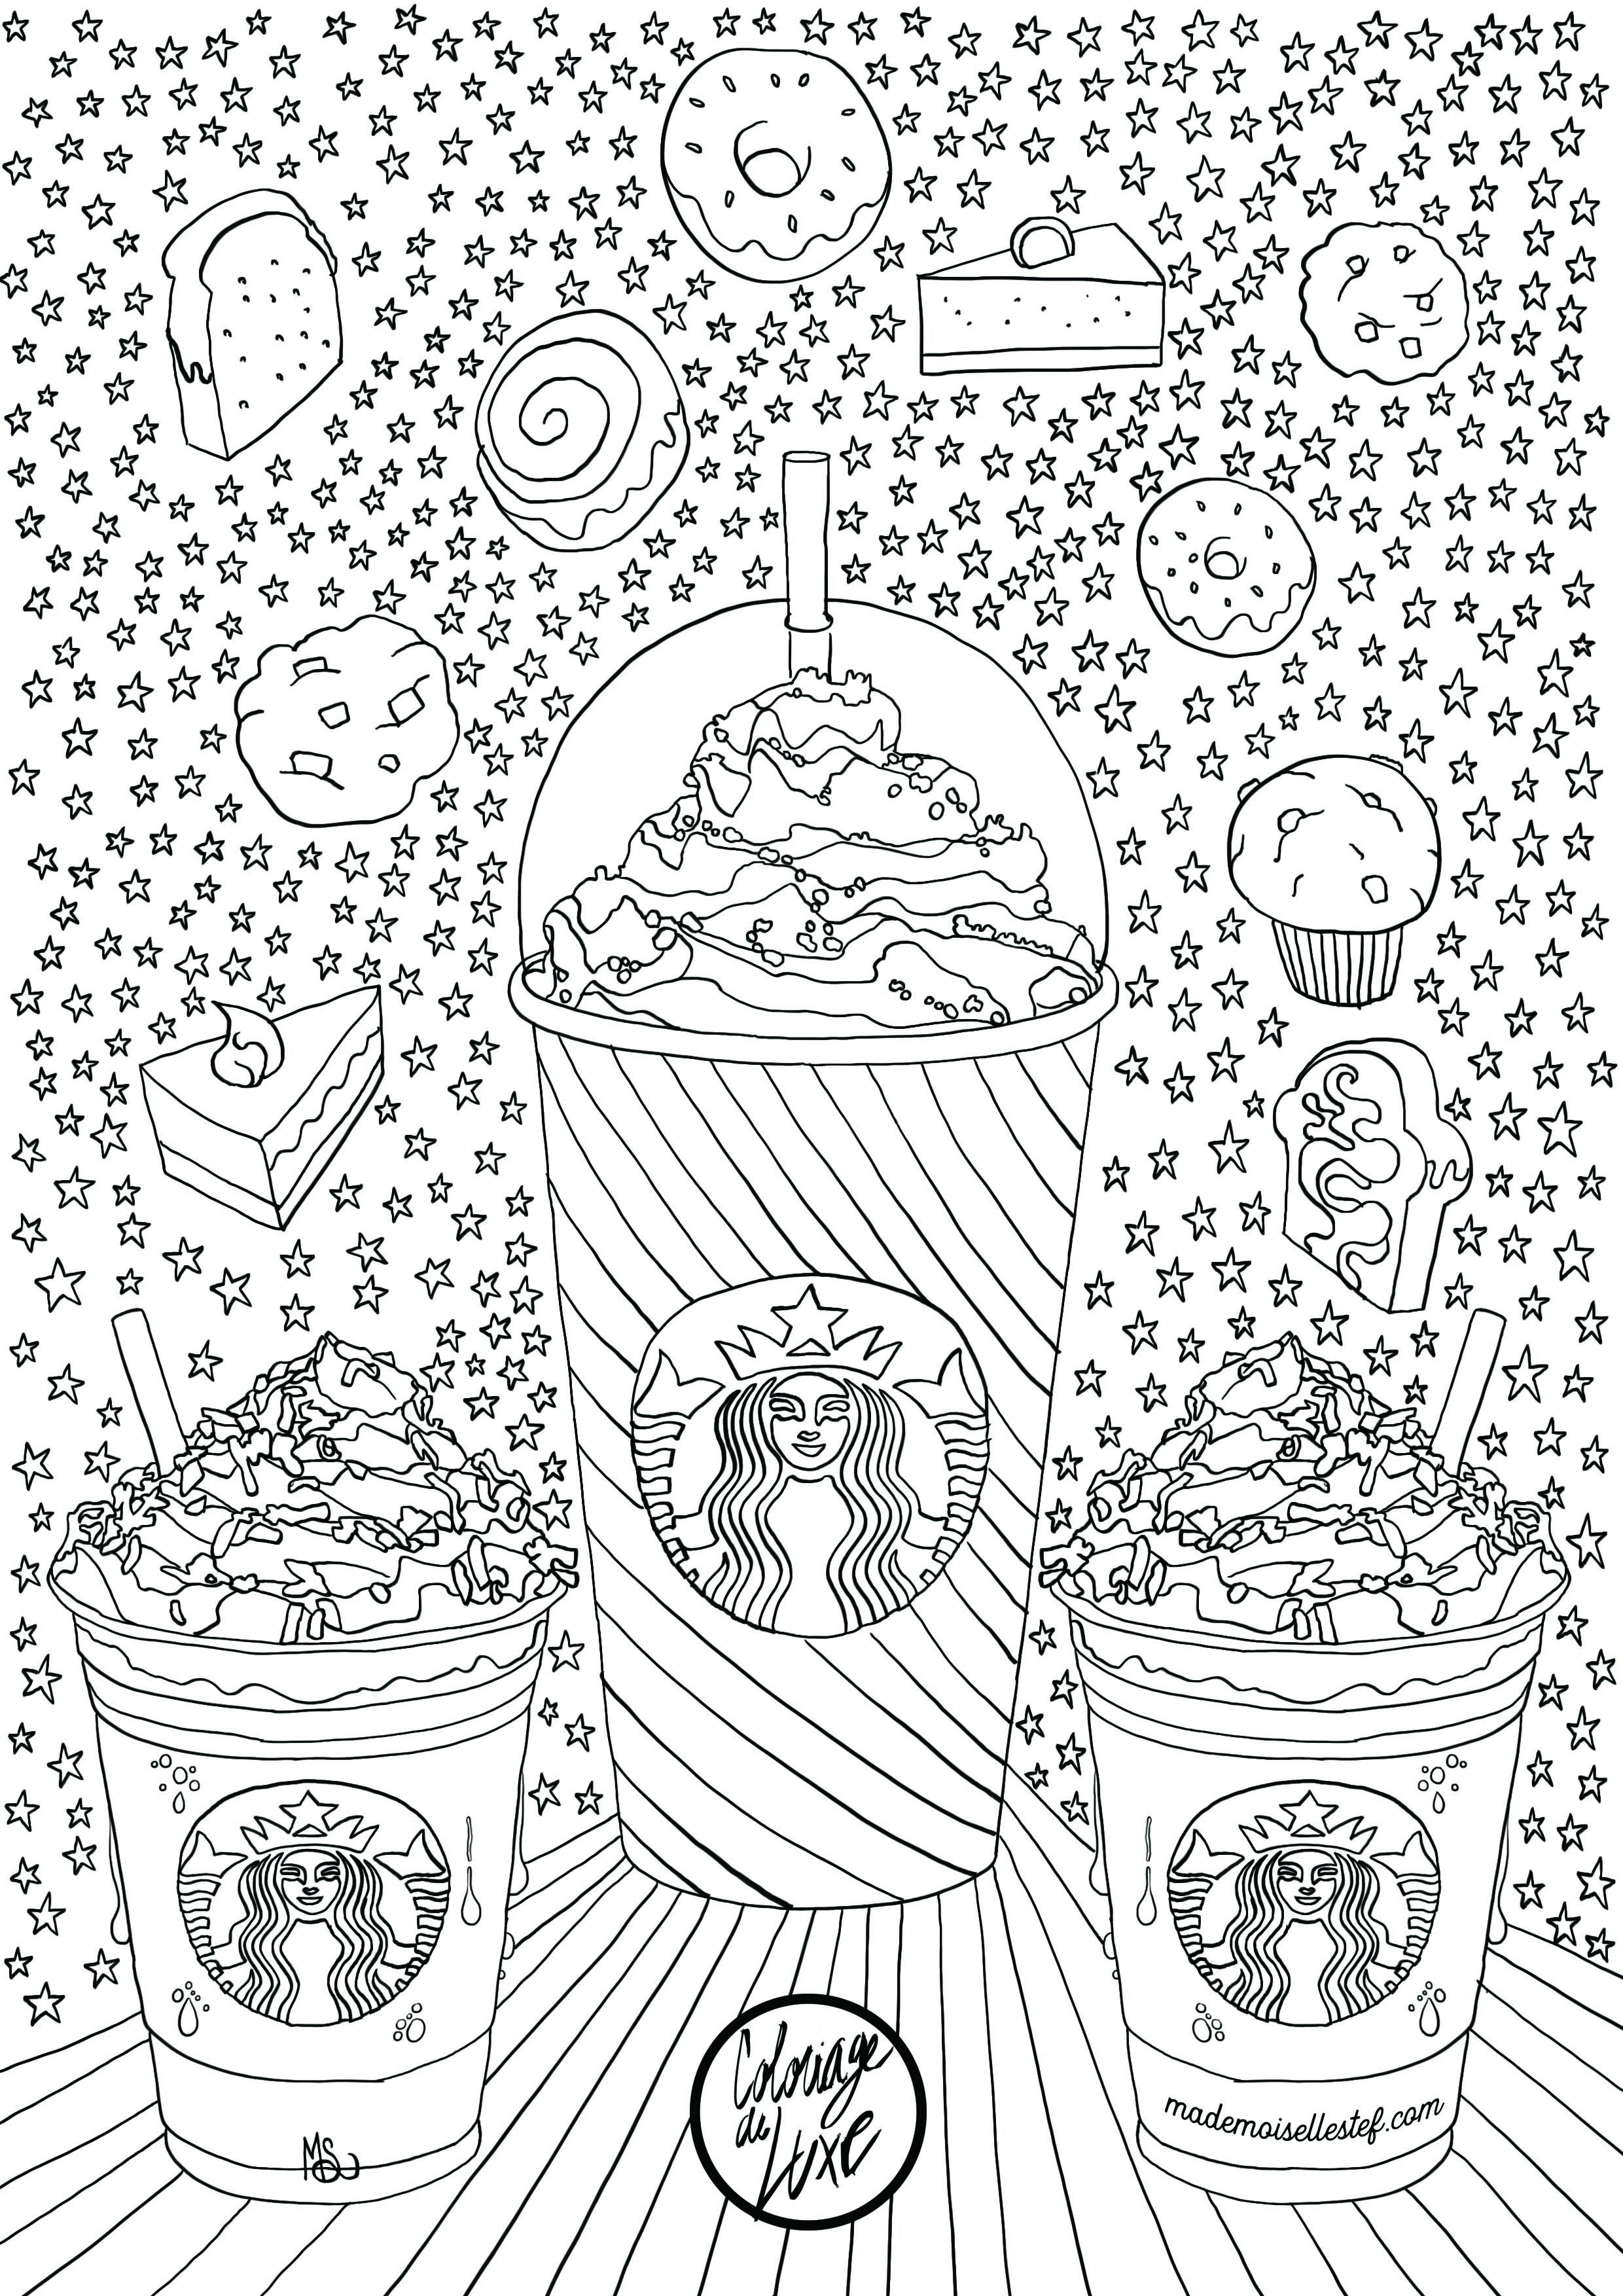 Starbucks Coloring Sheets For Girls  Coloriage Starbucks I Mademoiselle Stef Blog Lifestyle